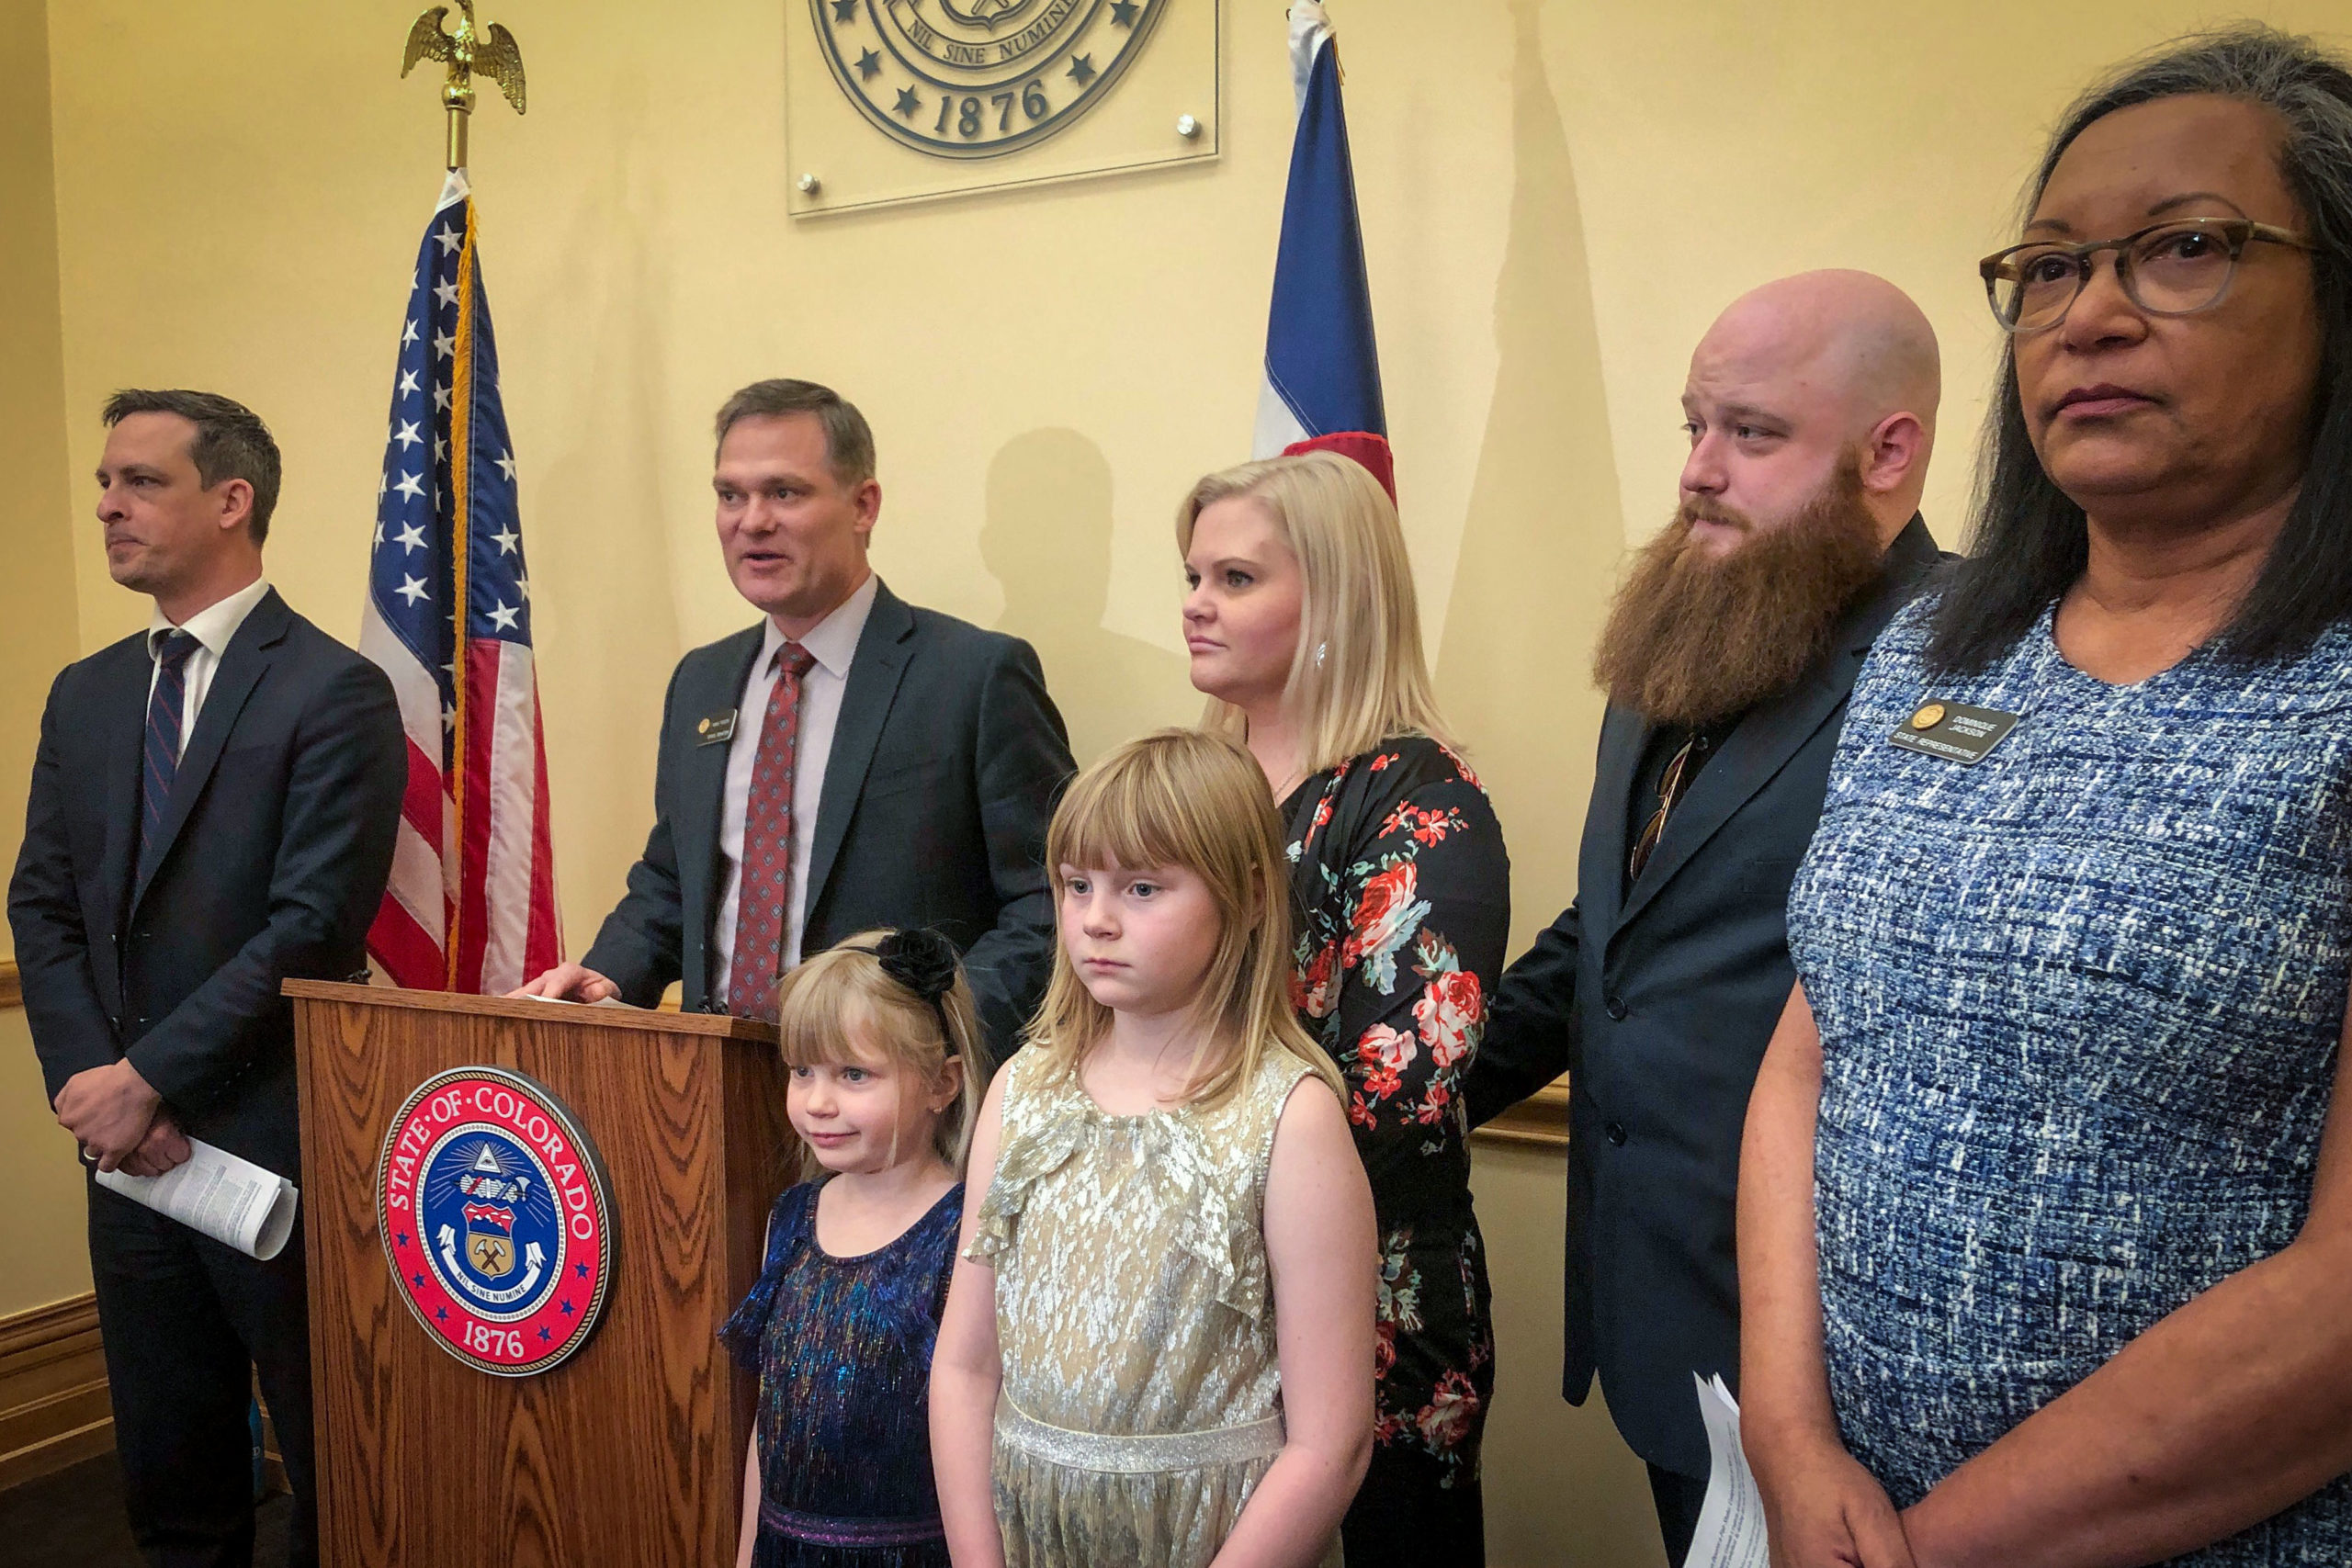 Democratic Senate Majority Leader Steve Fenberg and Sen. Mike Foote stand alongside a Colorado family who described a difficult arbitration issue they lived through at a news conference at the capitol, Jan. 15, 2020. Democratic Rep. Dominque Jackson, far right, supports new legislative changes to arbitration in Colorado.